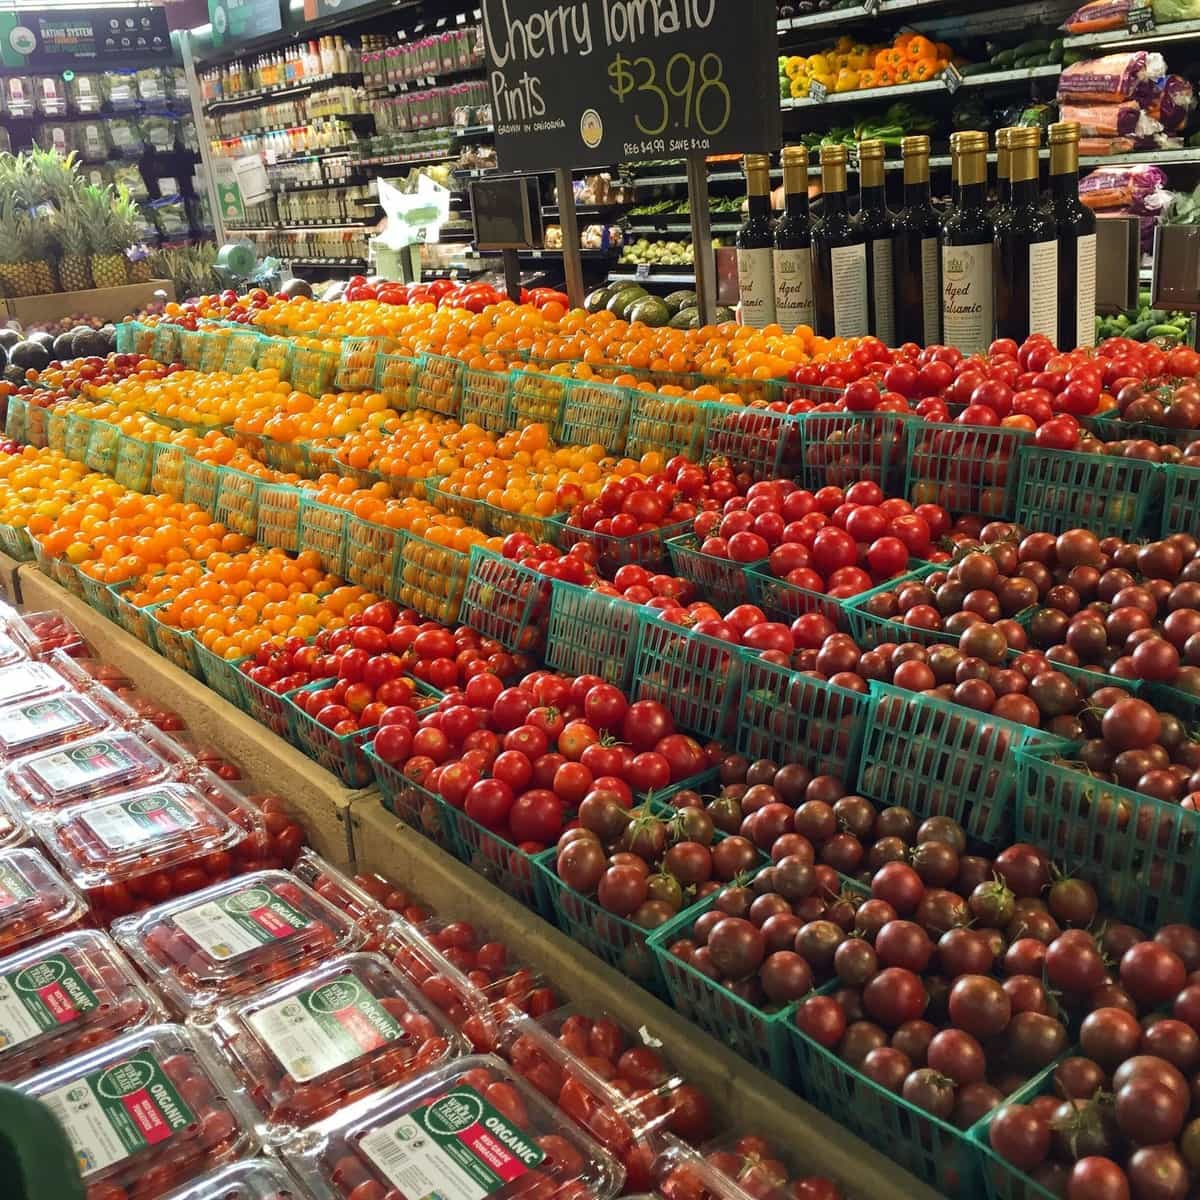 A customer walking into this store might feel self-conscious about pinching a tomato.